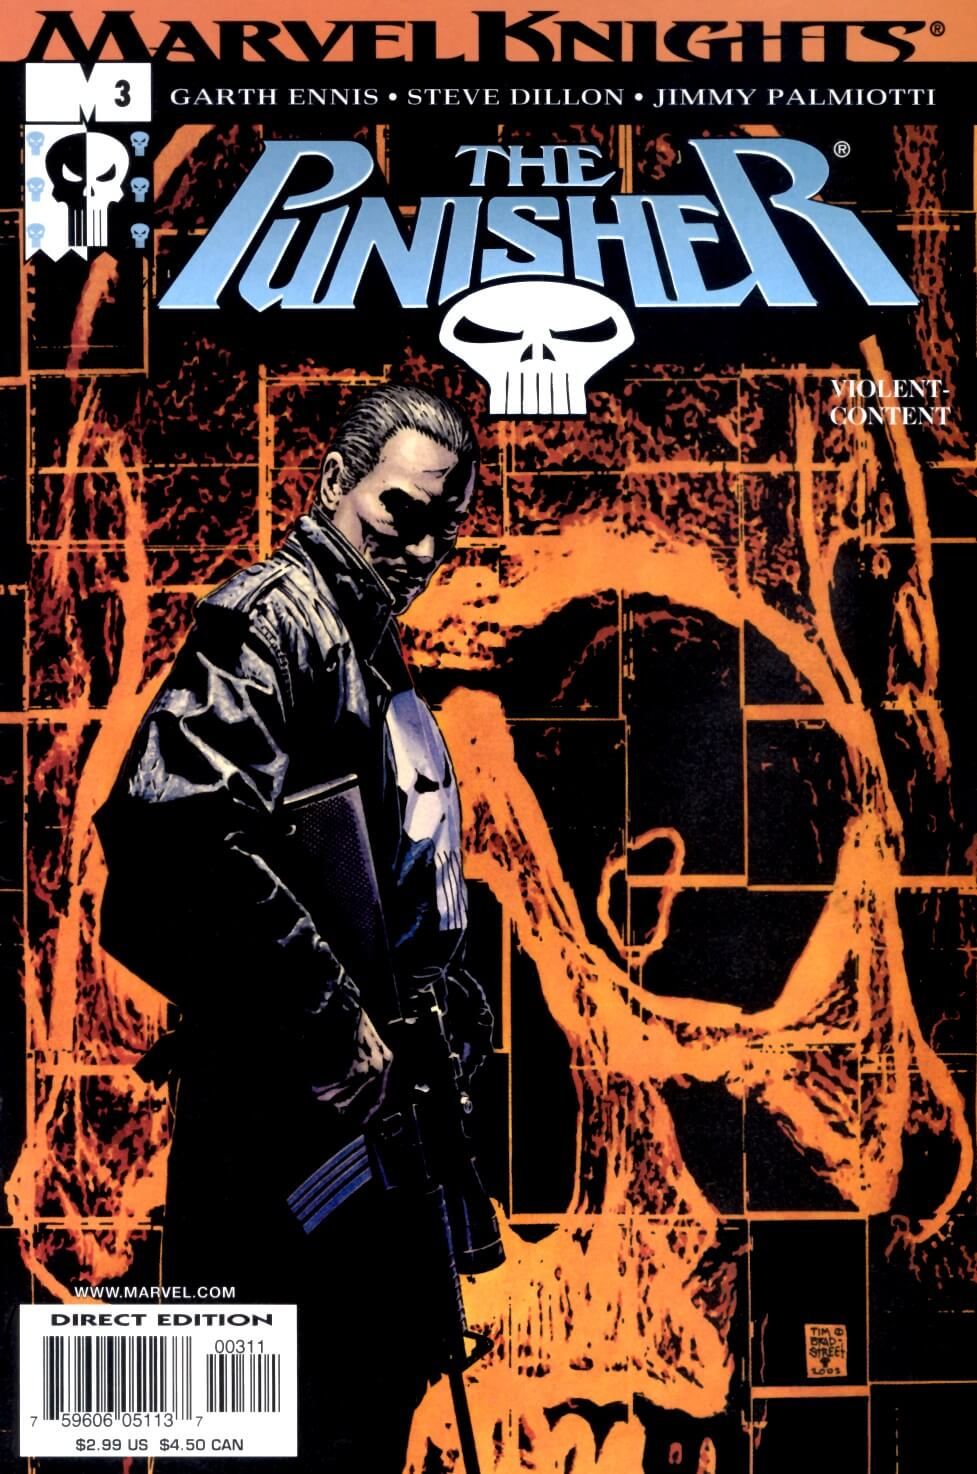 The Punisher Vol 5 #3